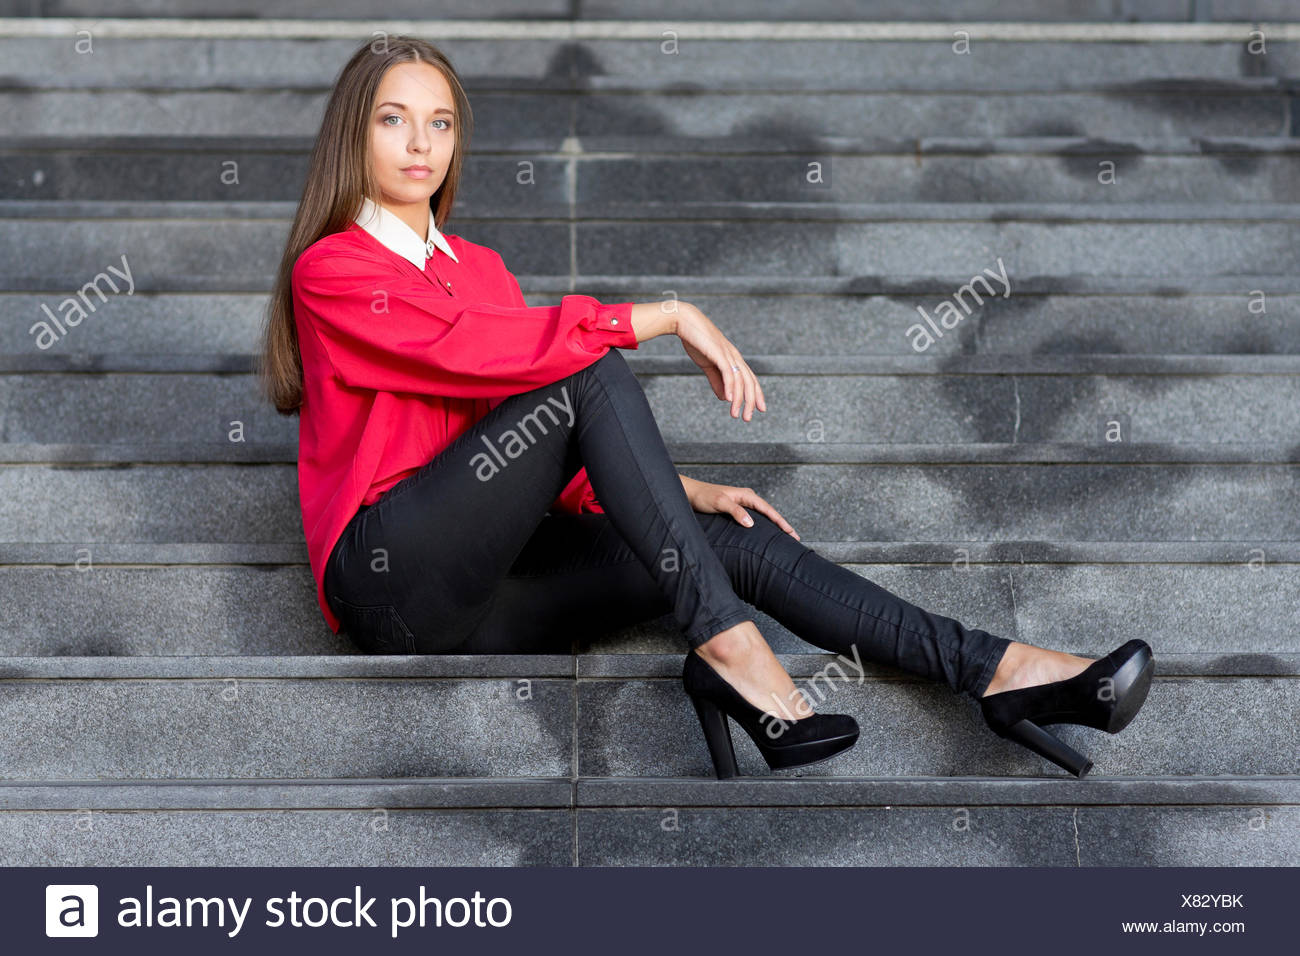 f4764c9ed57c10 Young woman wearing a red top, black jeans and high heels posing while  sitting on stairs